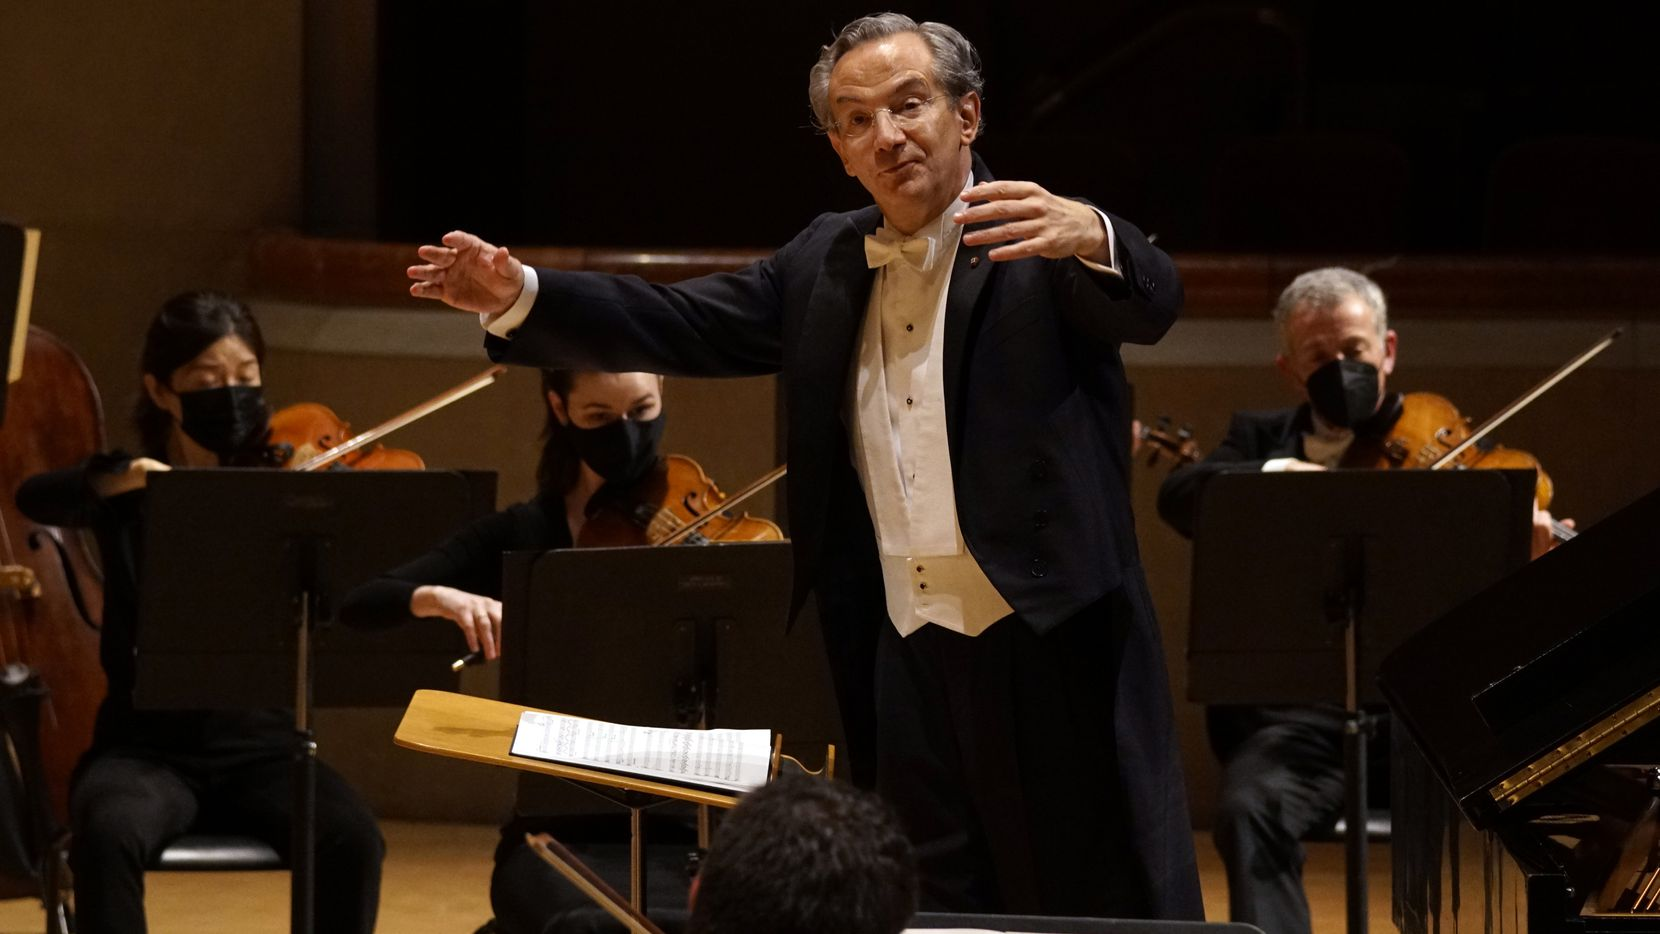 Conductor Fabio Luisi conducts the Dallas Symphony Orchestra at the Meyerson Symphony Center in Dallas on April 1, 2021.